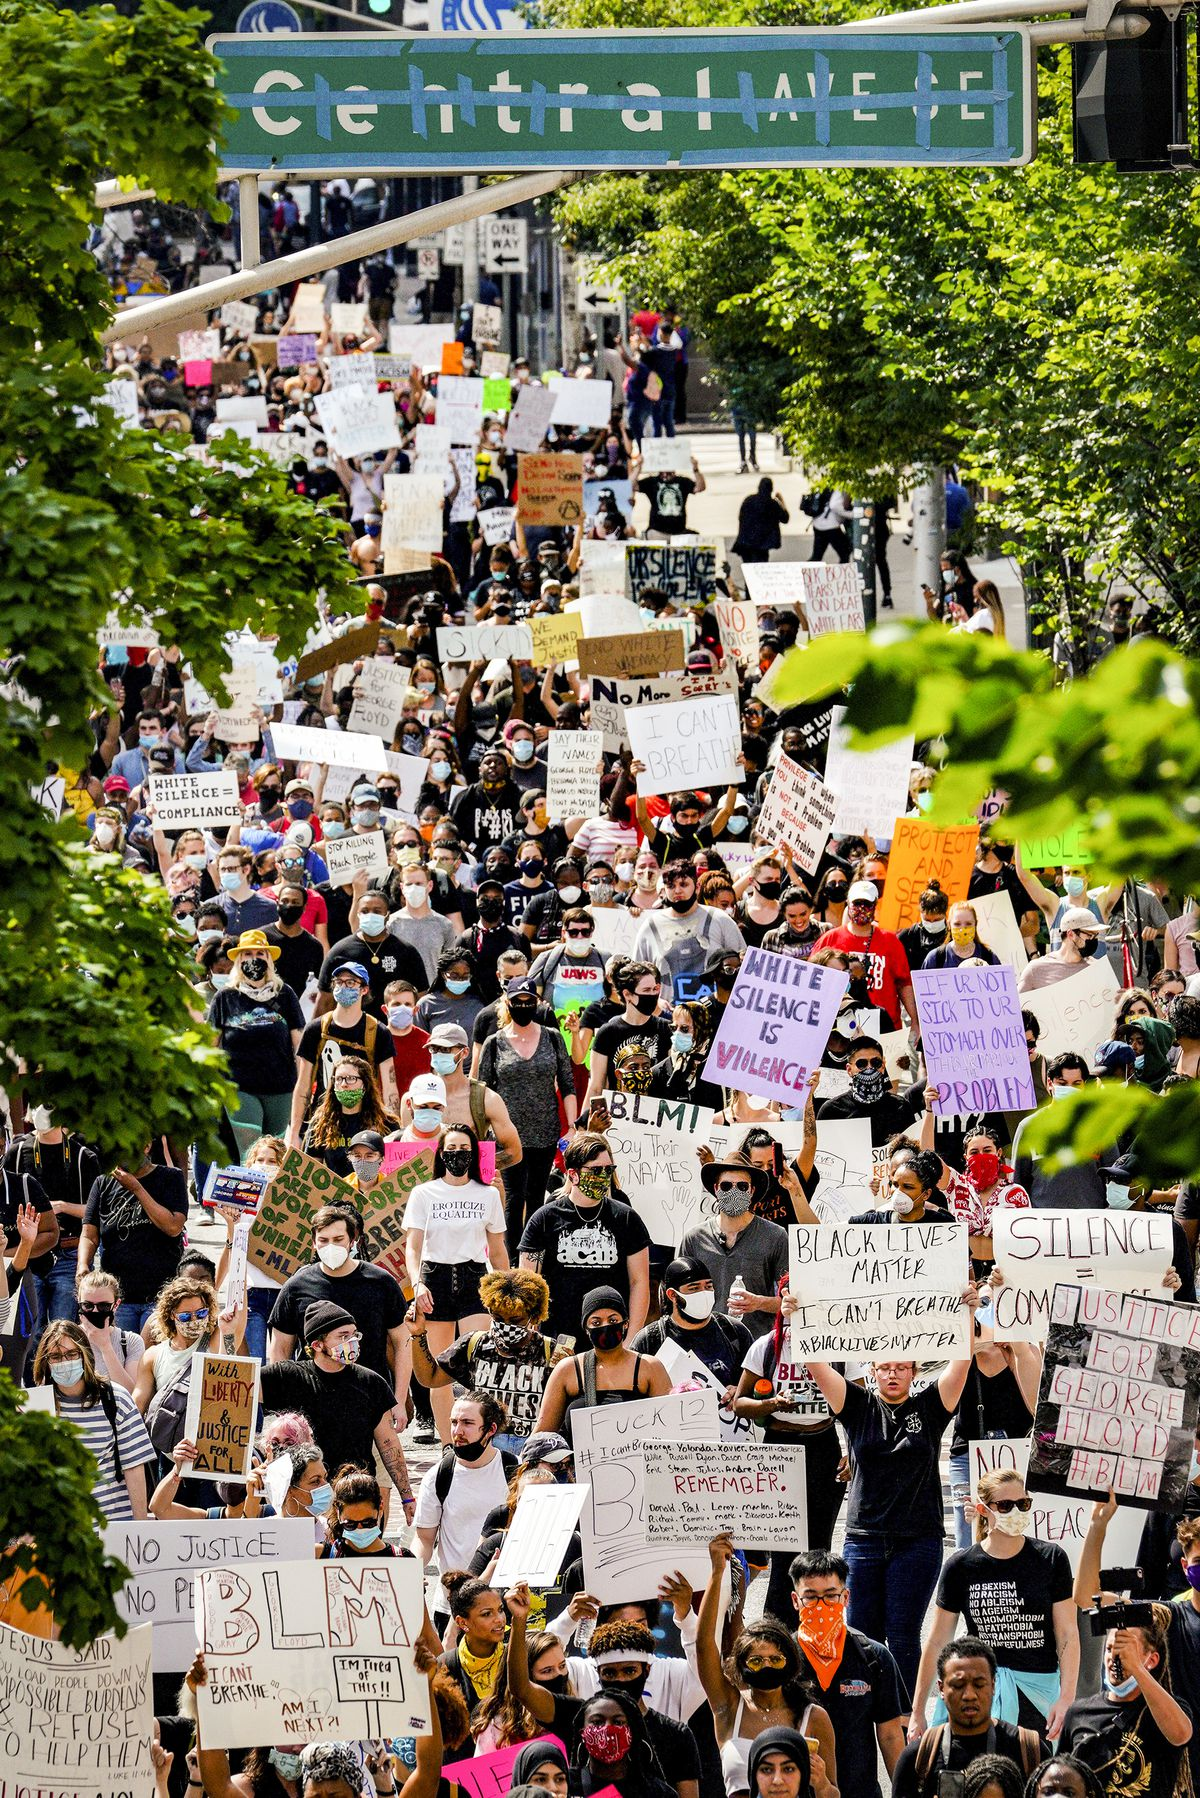 """On a tree lined street, a crowd so dense it looks like a river of people. Most have on masks, and most carry signs raised above their heads, with messages like """"White silence is violence,"""" BLM!,"""" """"Riots are the language of the unheard,"""" and """"I can't breathe."""""""